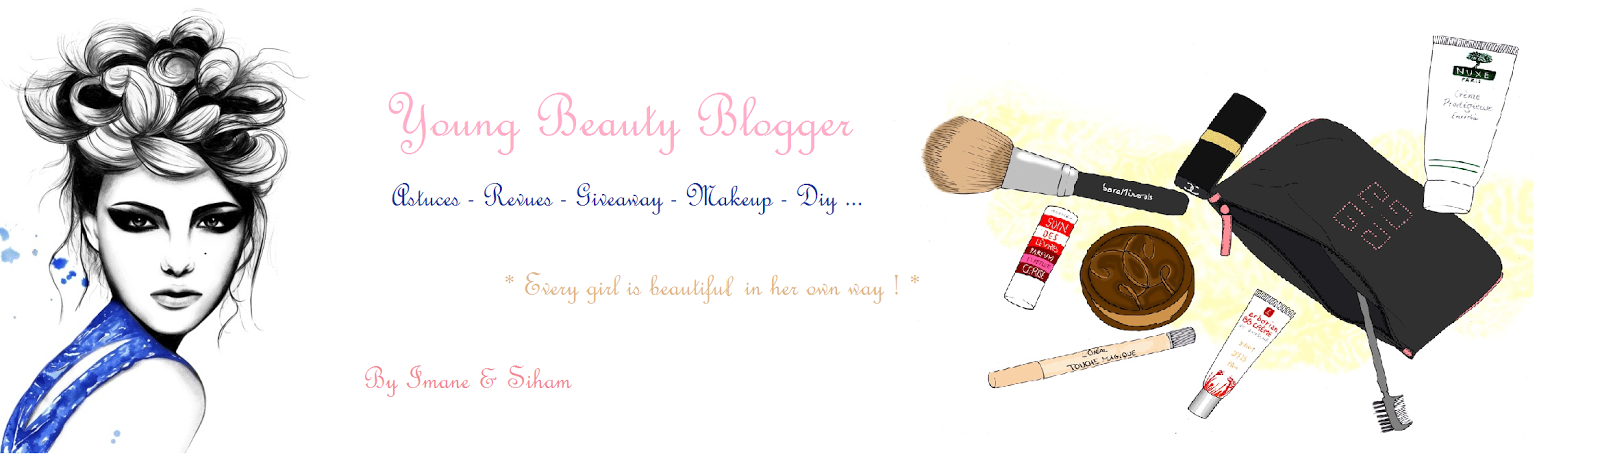 Young Beauty Blogger